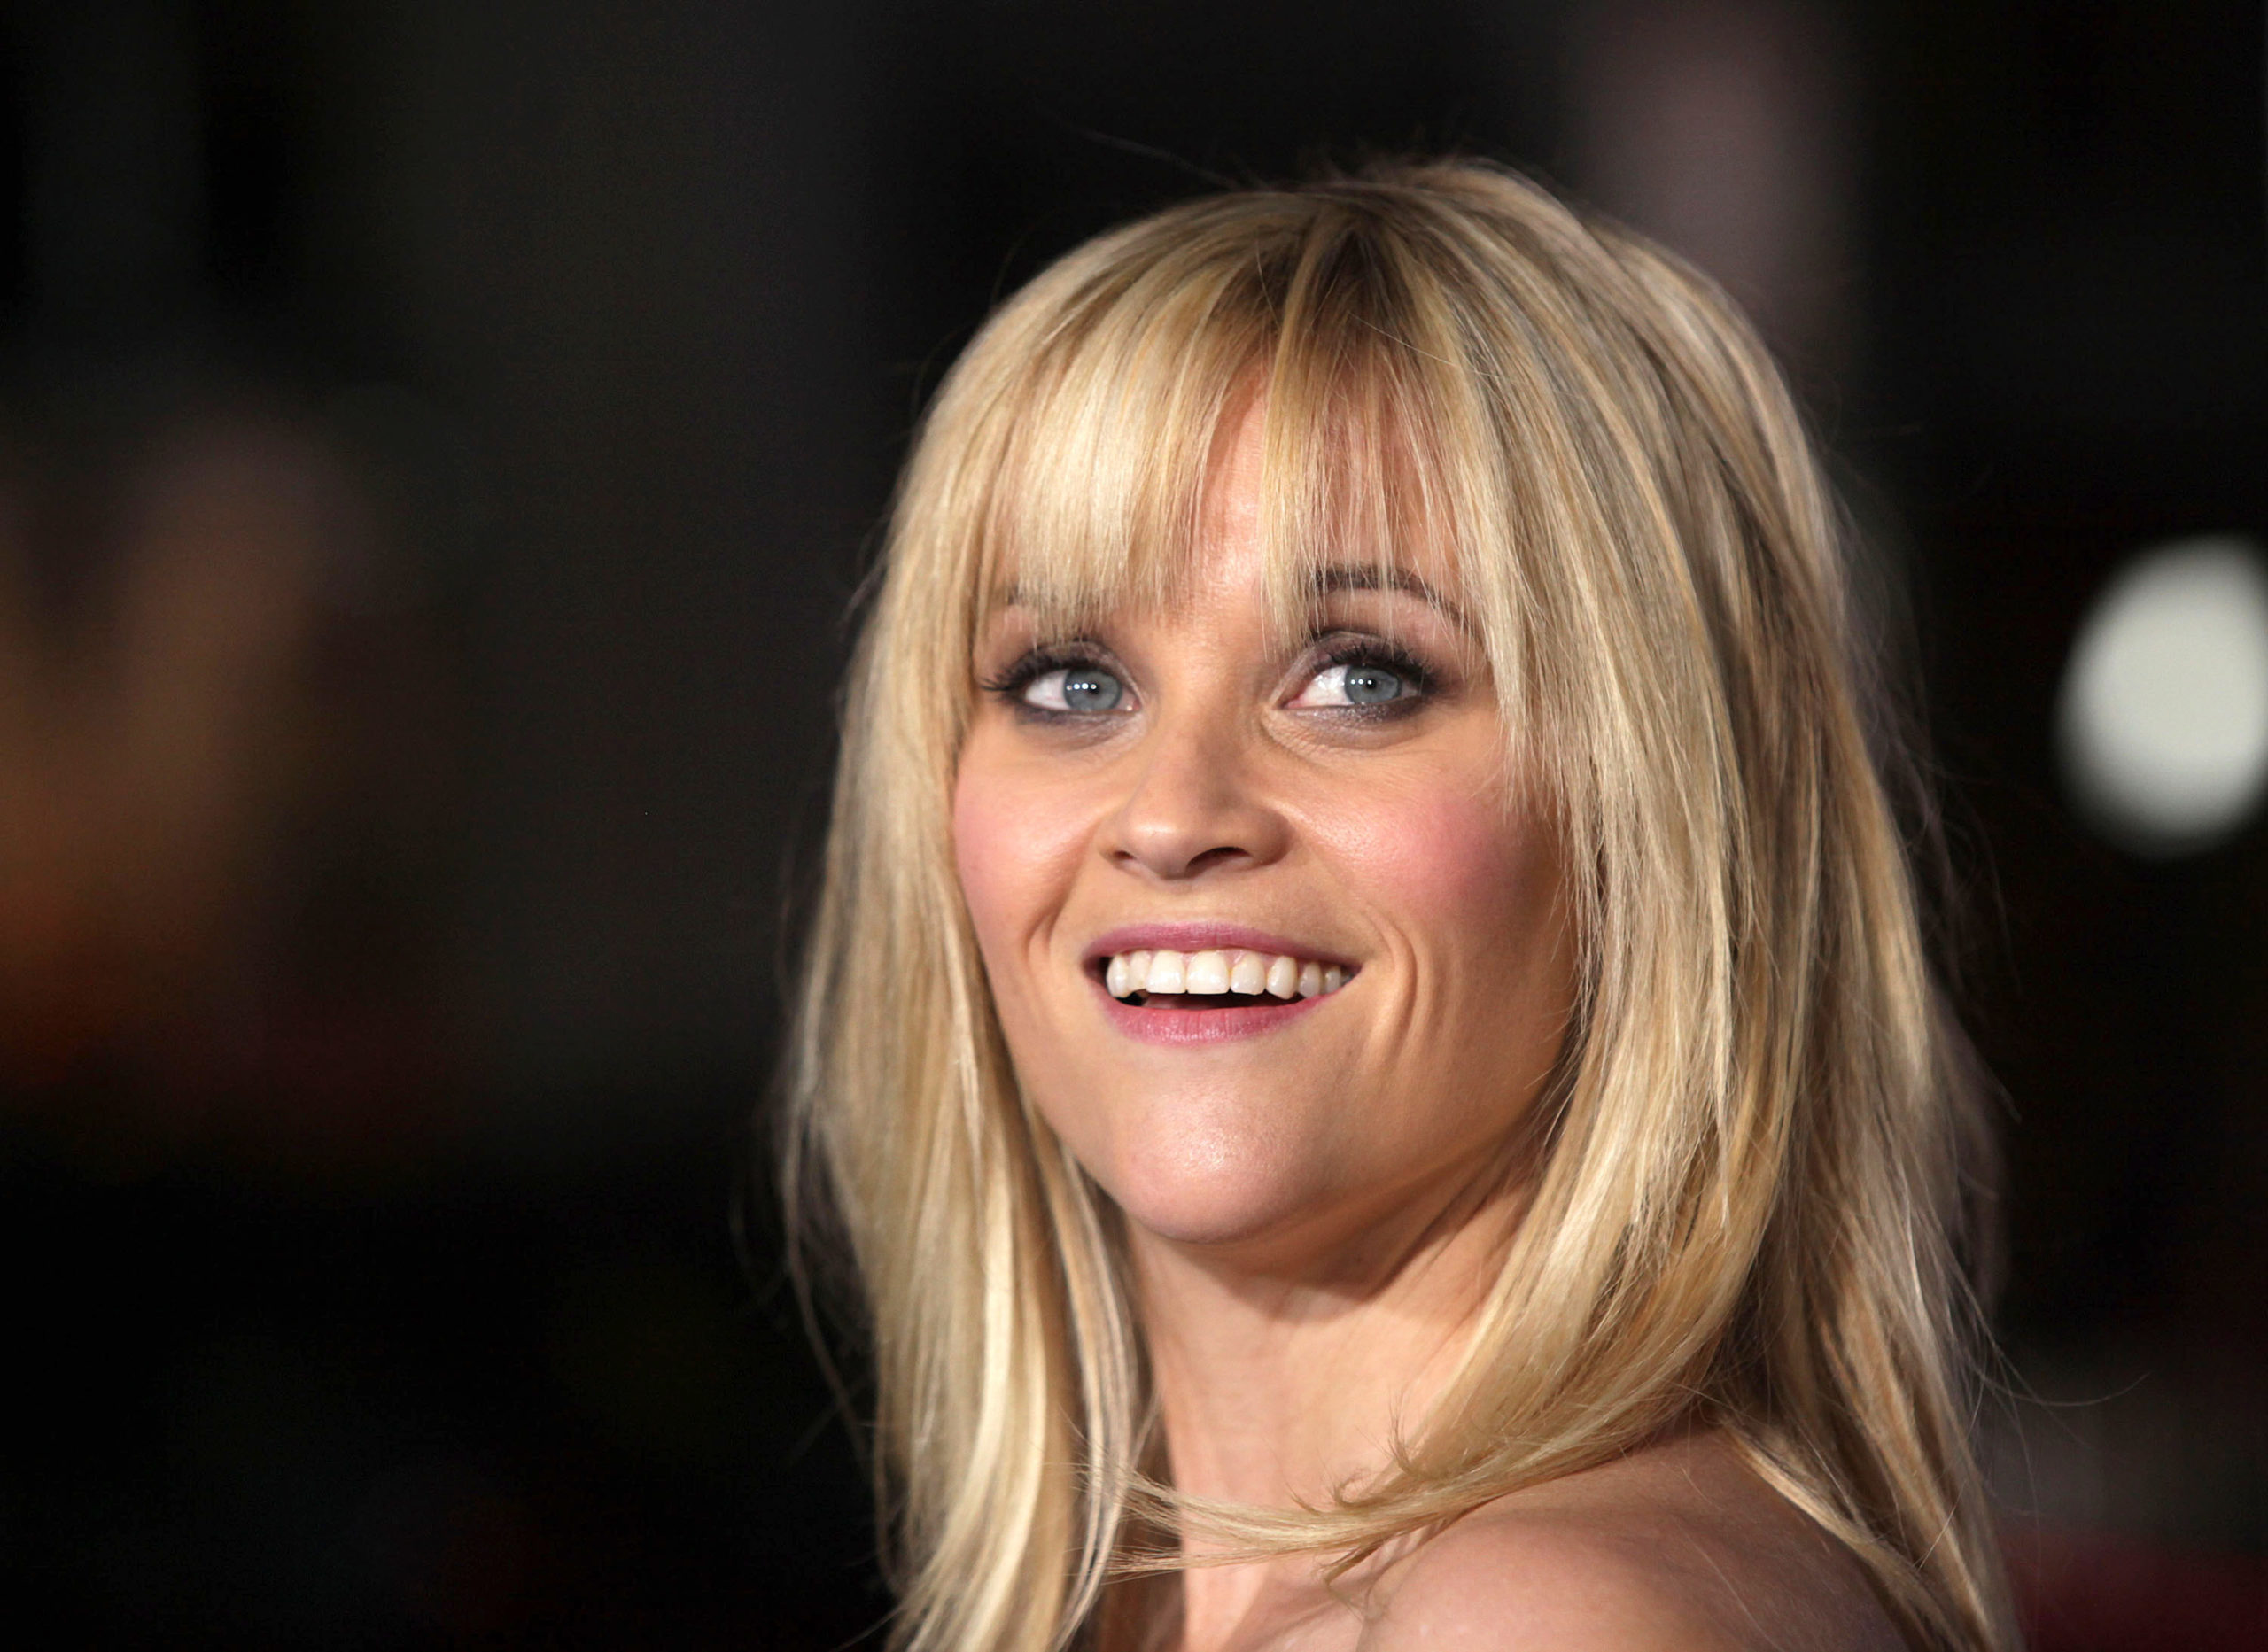 Los,Angeles,-,Feb,08:,Reese,Witherspoon,Arrives,To,The